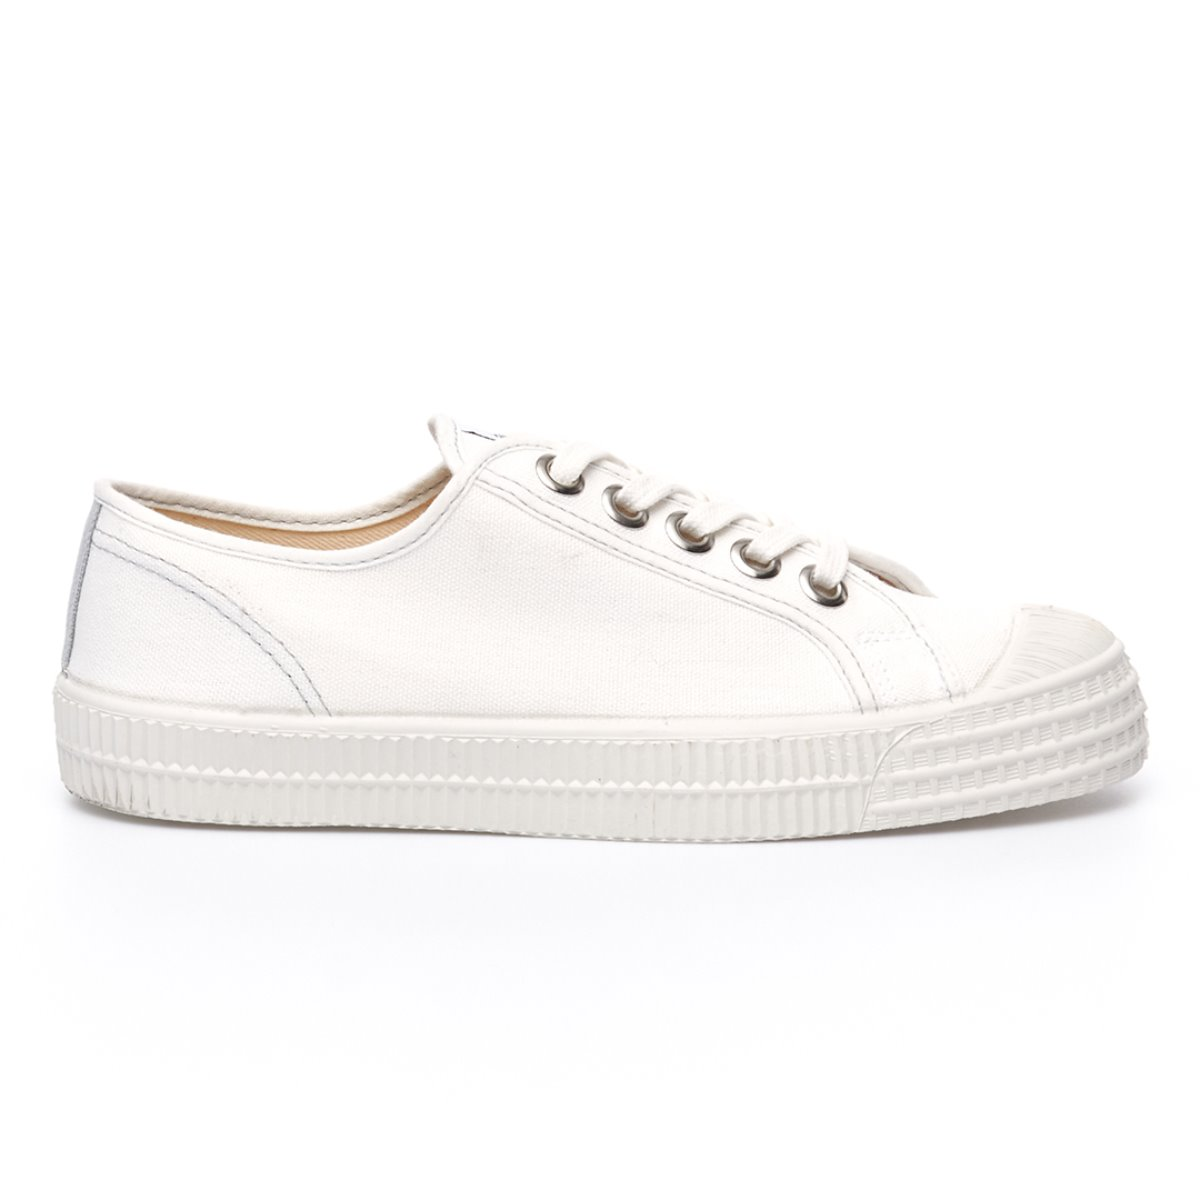 Star Master Stitch White/Grey